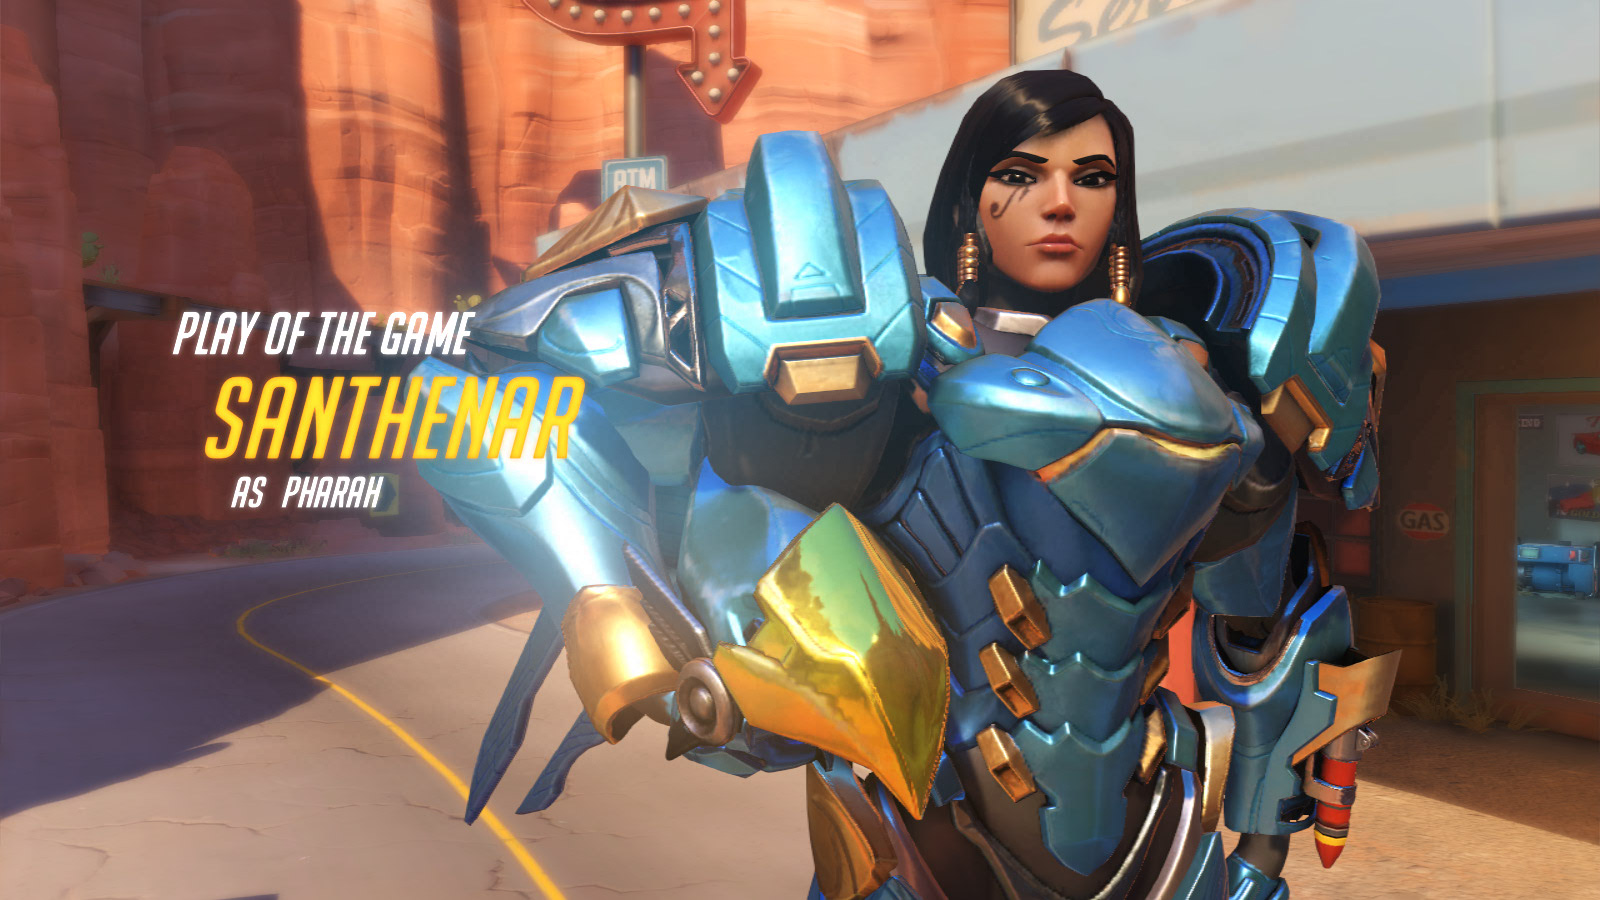 Overwatch developer on Play of the Game improvements and Blizzard introducing ranked matches